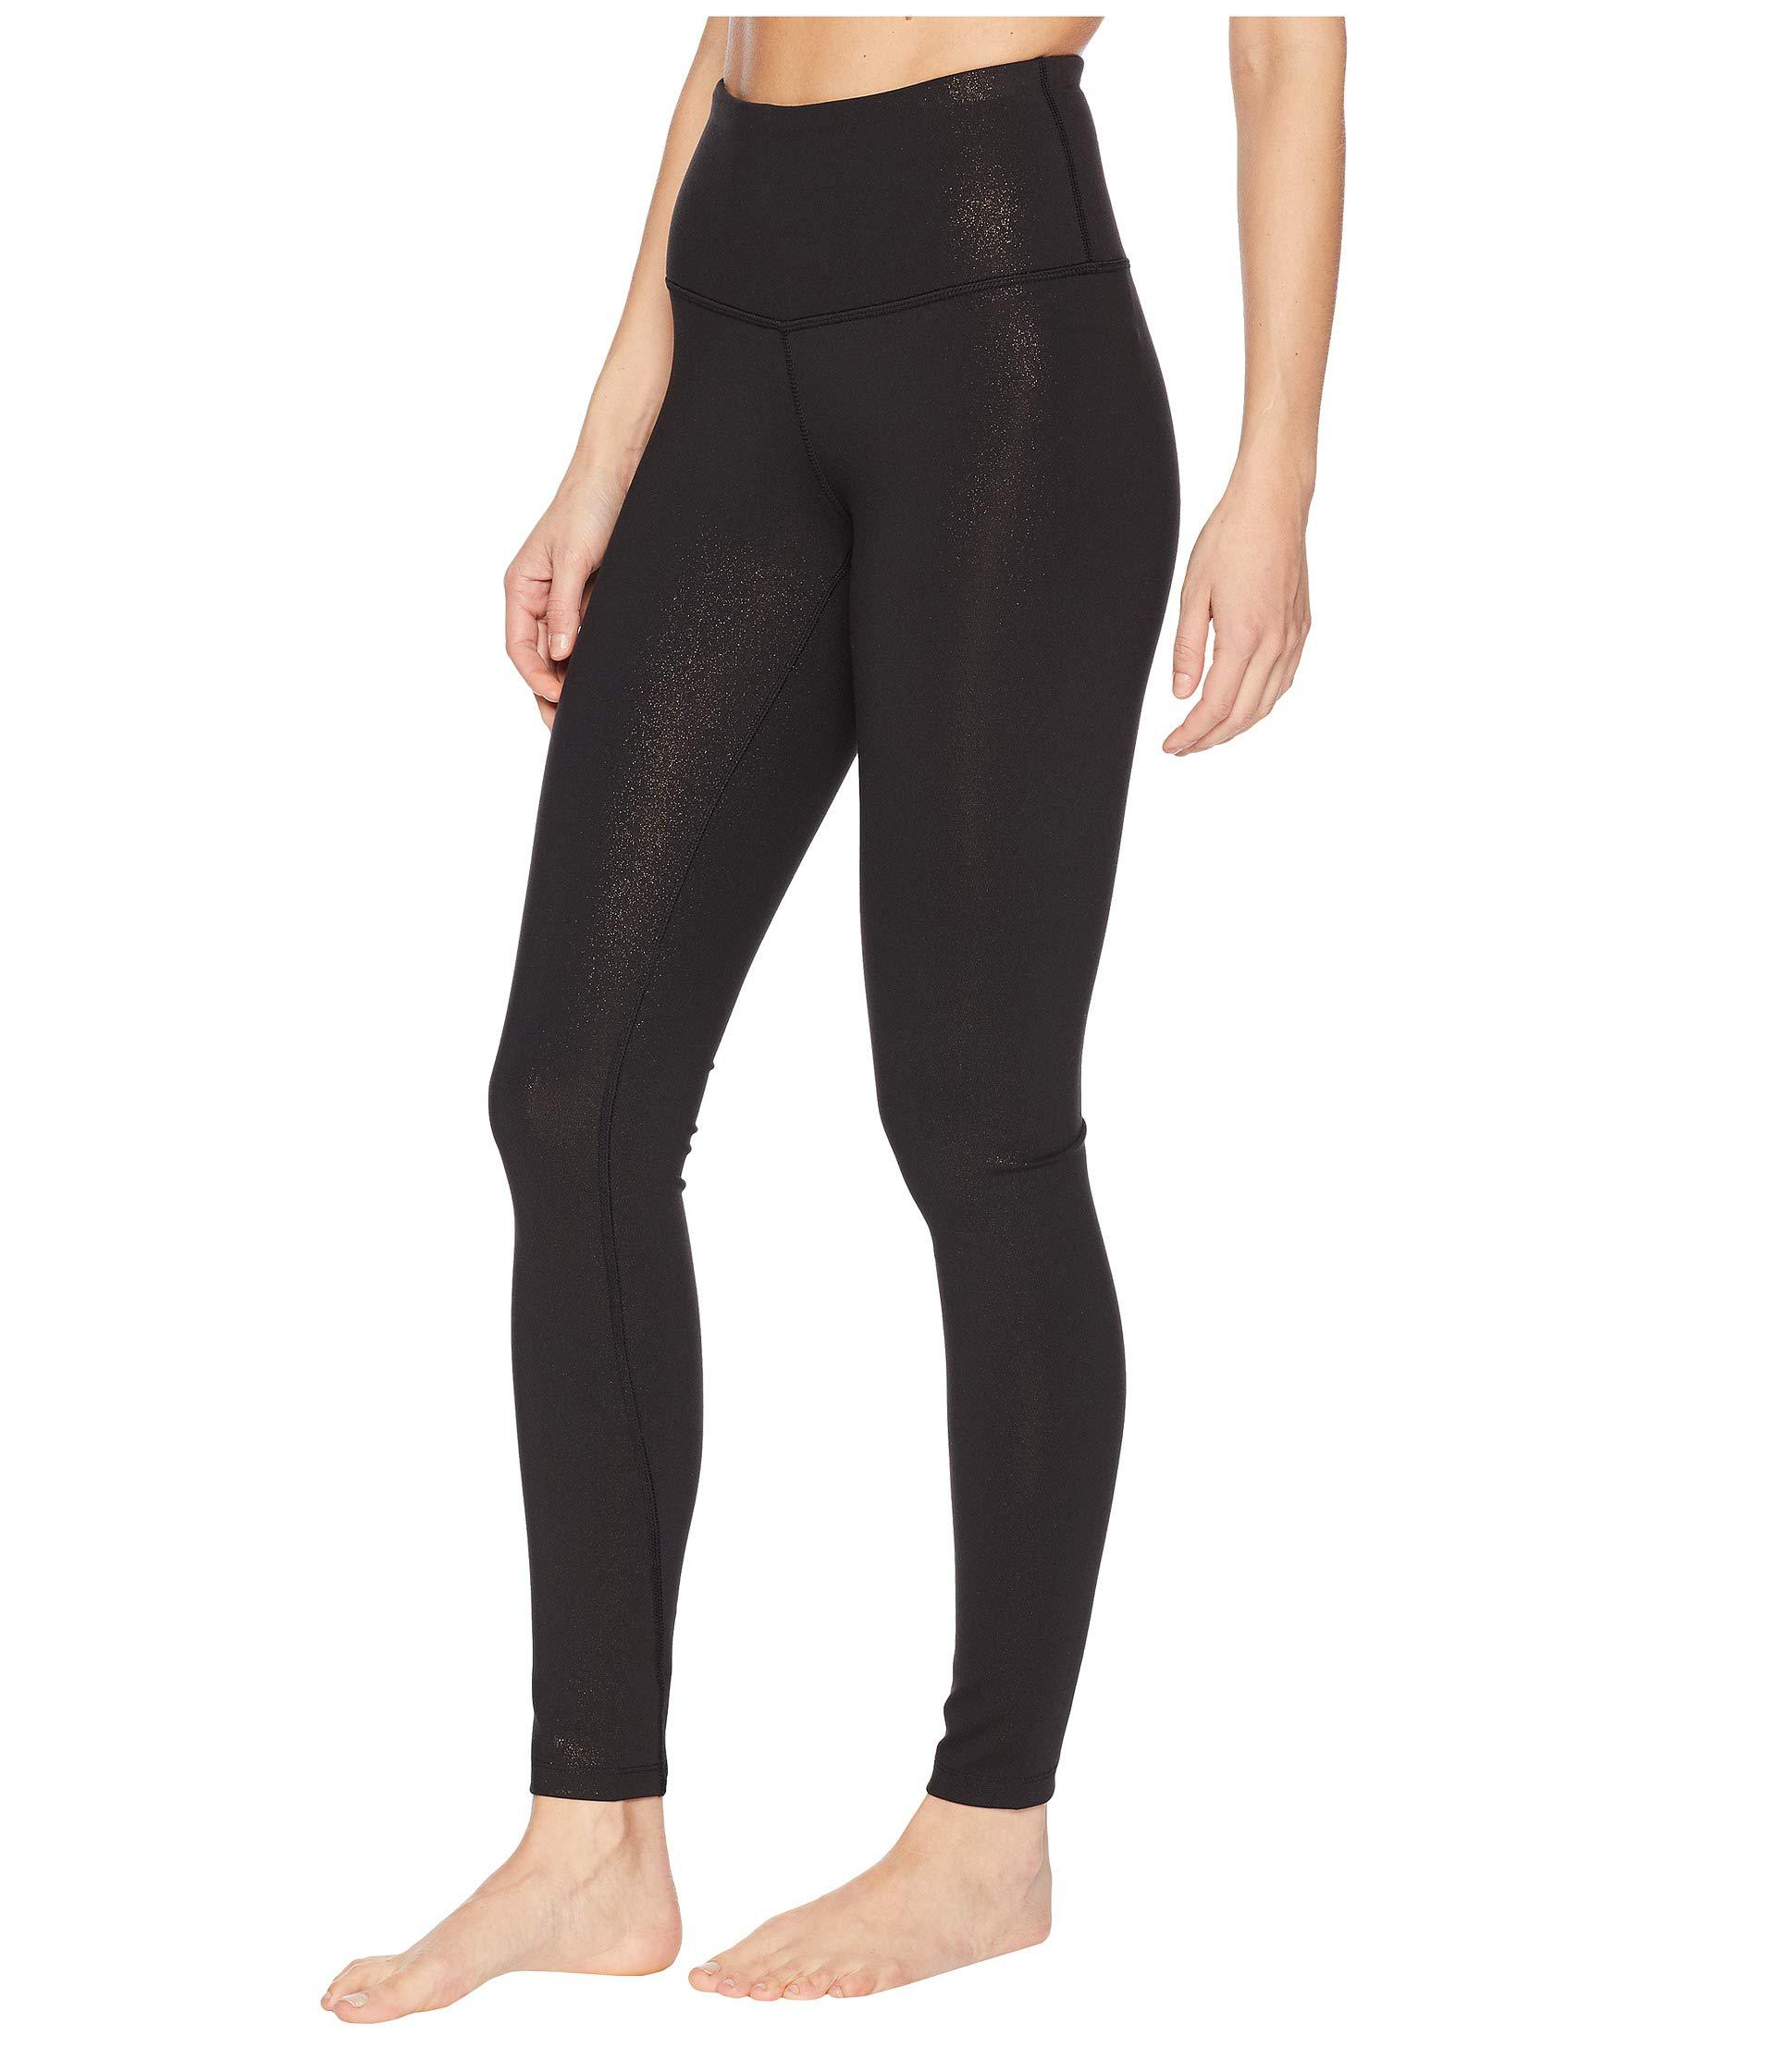 0fb4cedb9aa8a Lyst - The North Face Motivation High-rise Tights (tnf Black Copper  Sparkle) Women's Casual Pants in Black